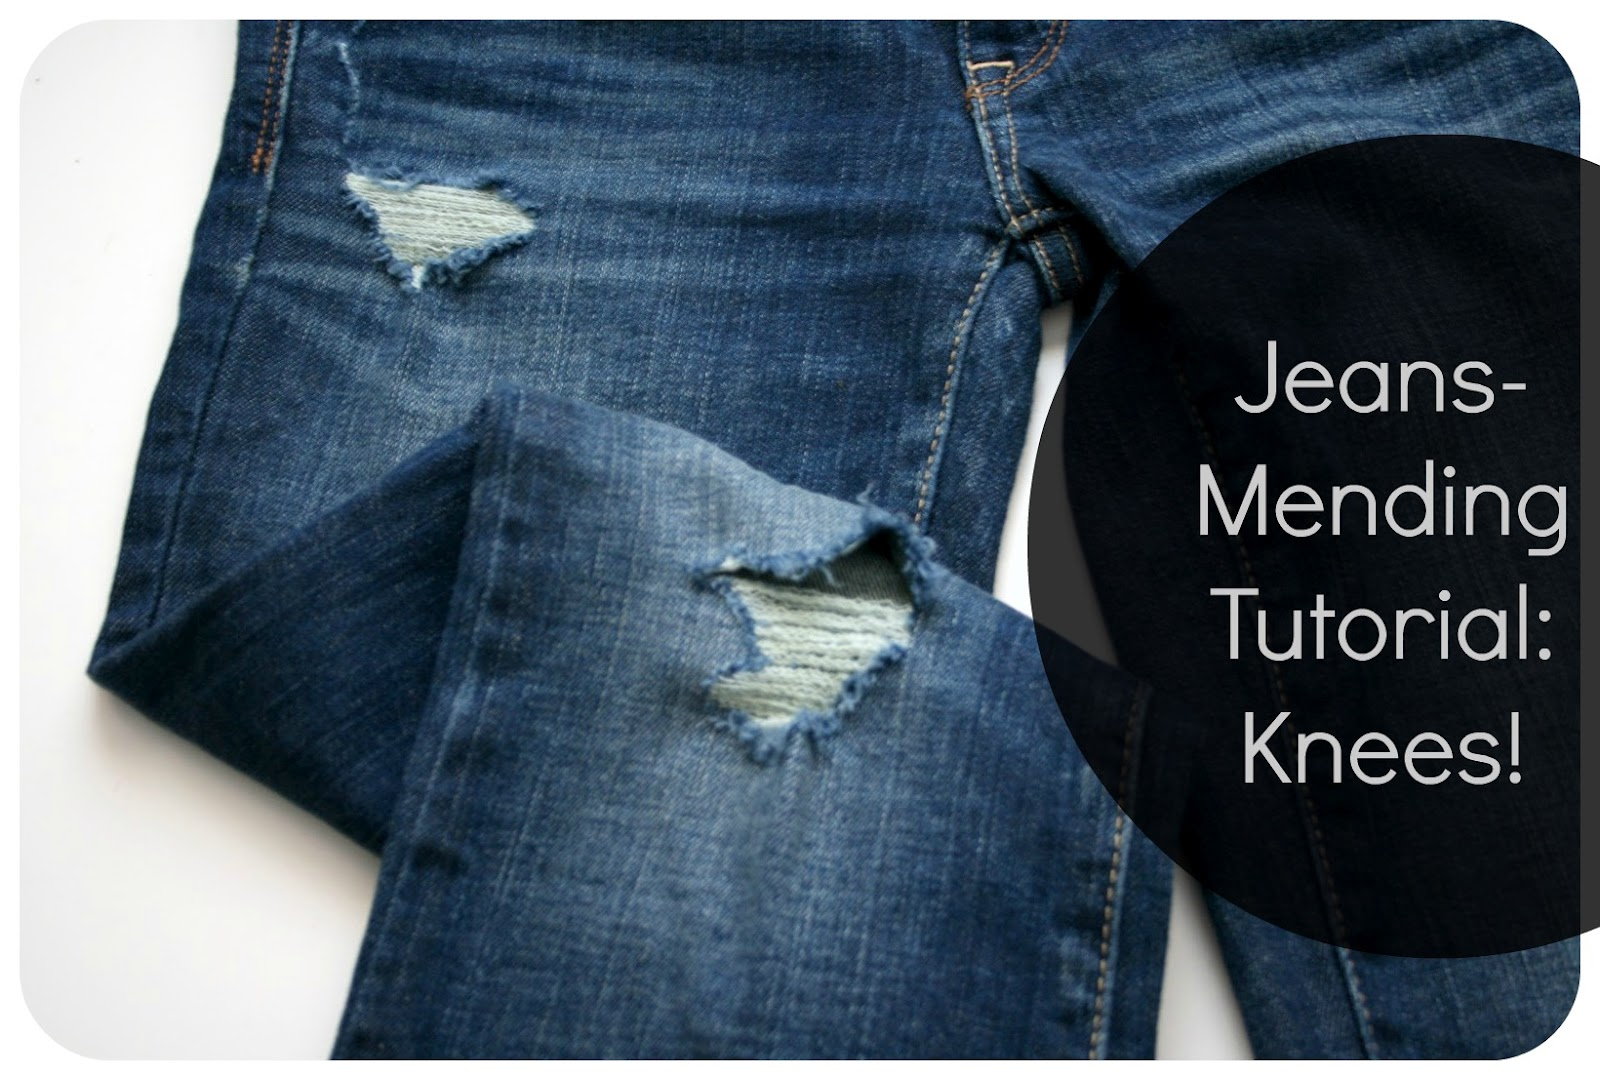 9ebd4fe8ae7 9.13.2012. So you've probably seen this tutorial of mine on how to mend  holes in jeans ...